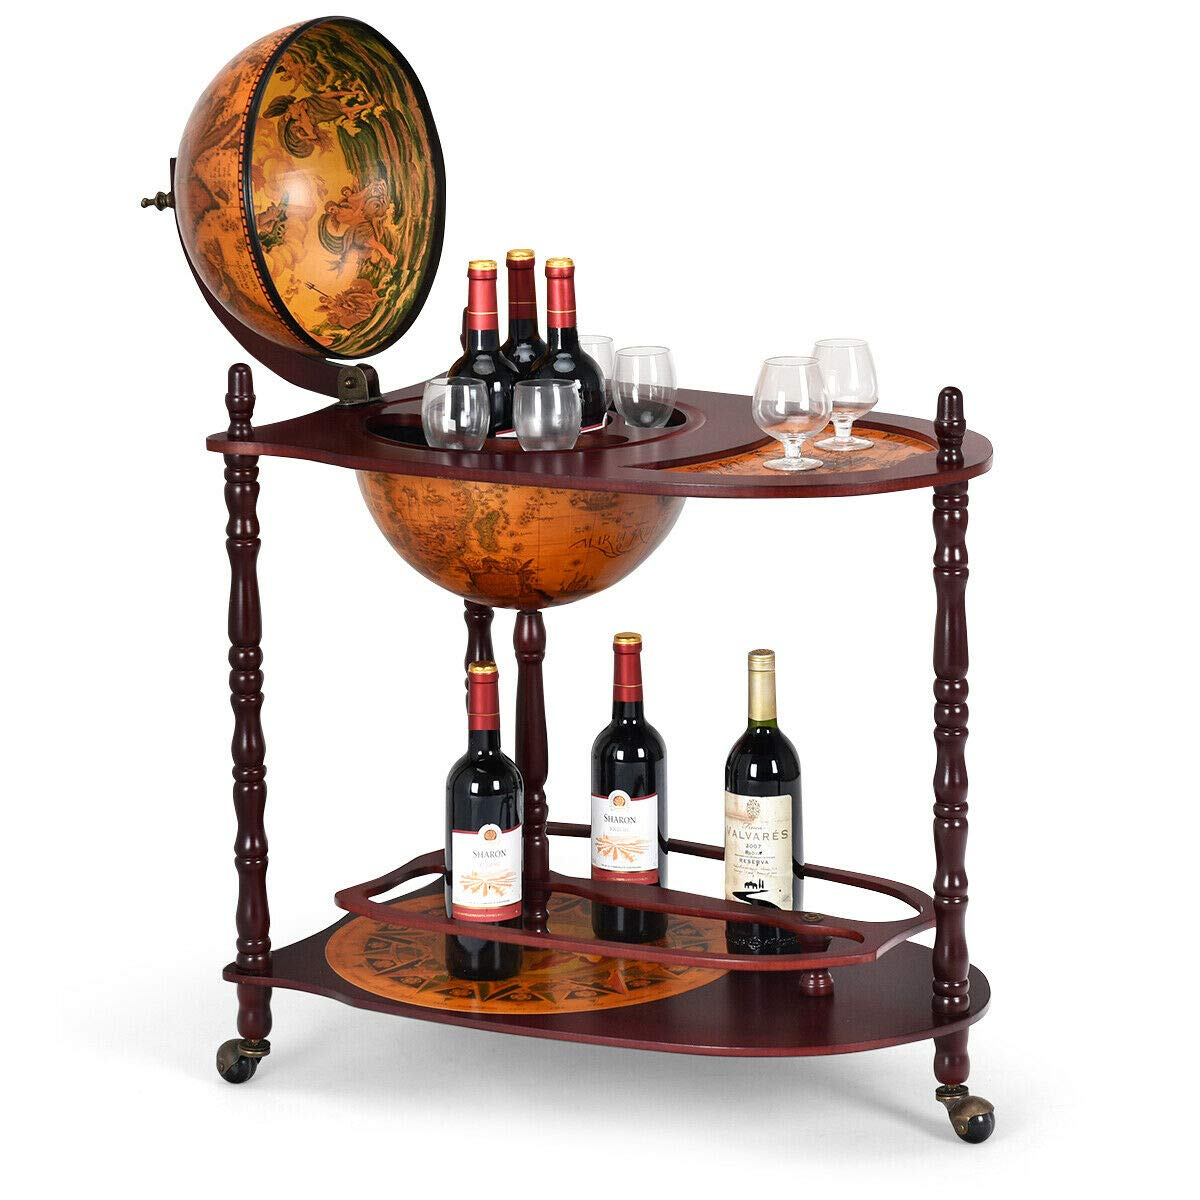 Goplus 34 Wood Globe Wine Bar Stand 16th Century Italian Rack Bigger Shelf for More Liquor Bottle